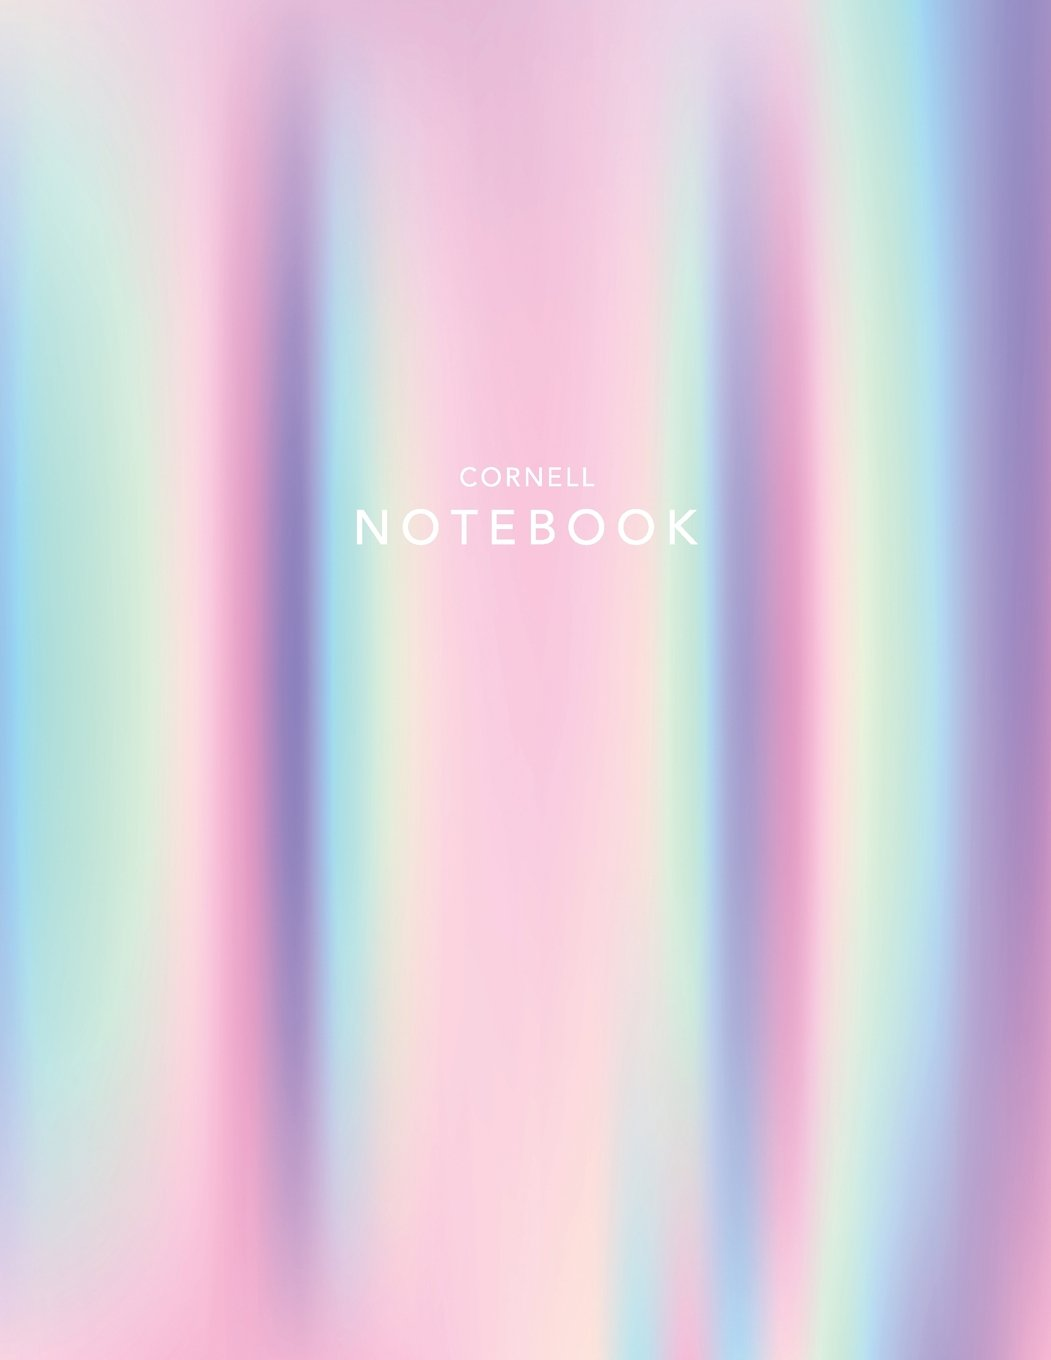 Cornell Notebook Holographic Foil 120 White Pages 8 5x11